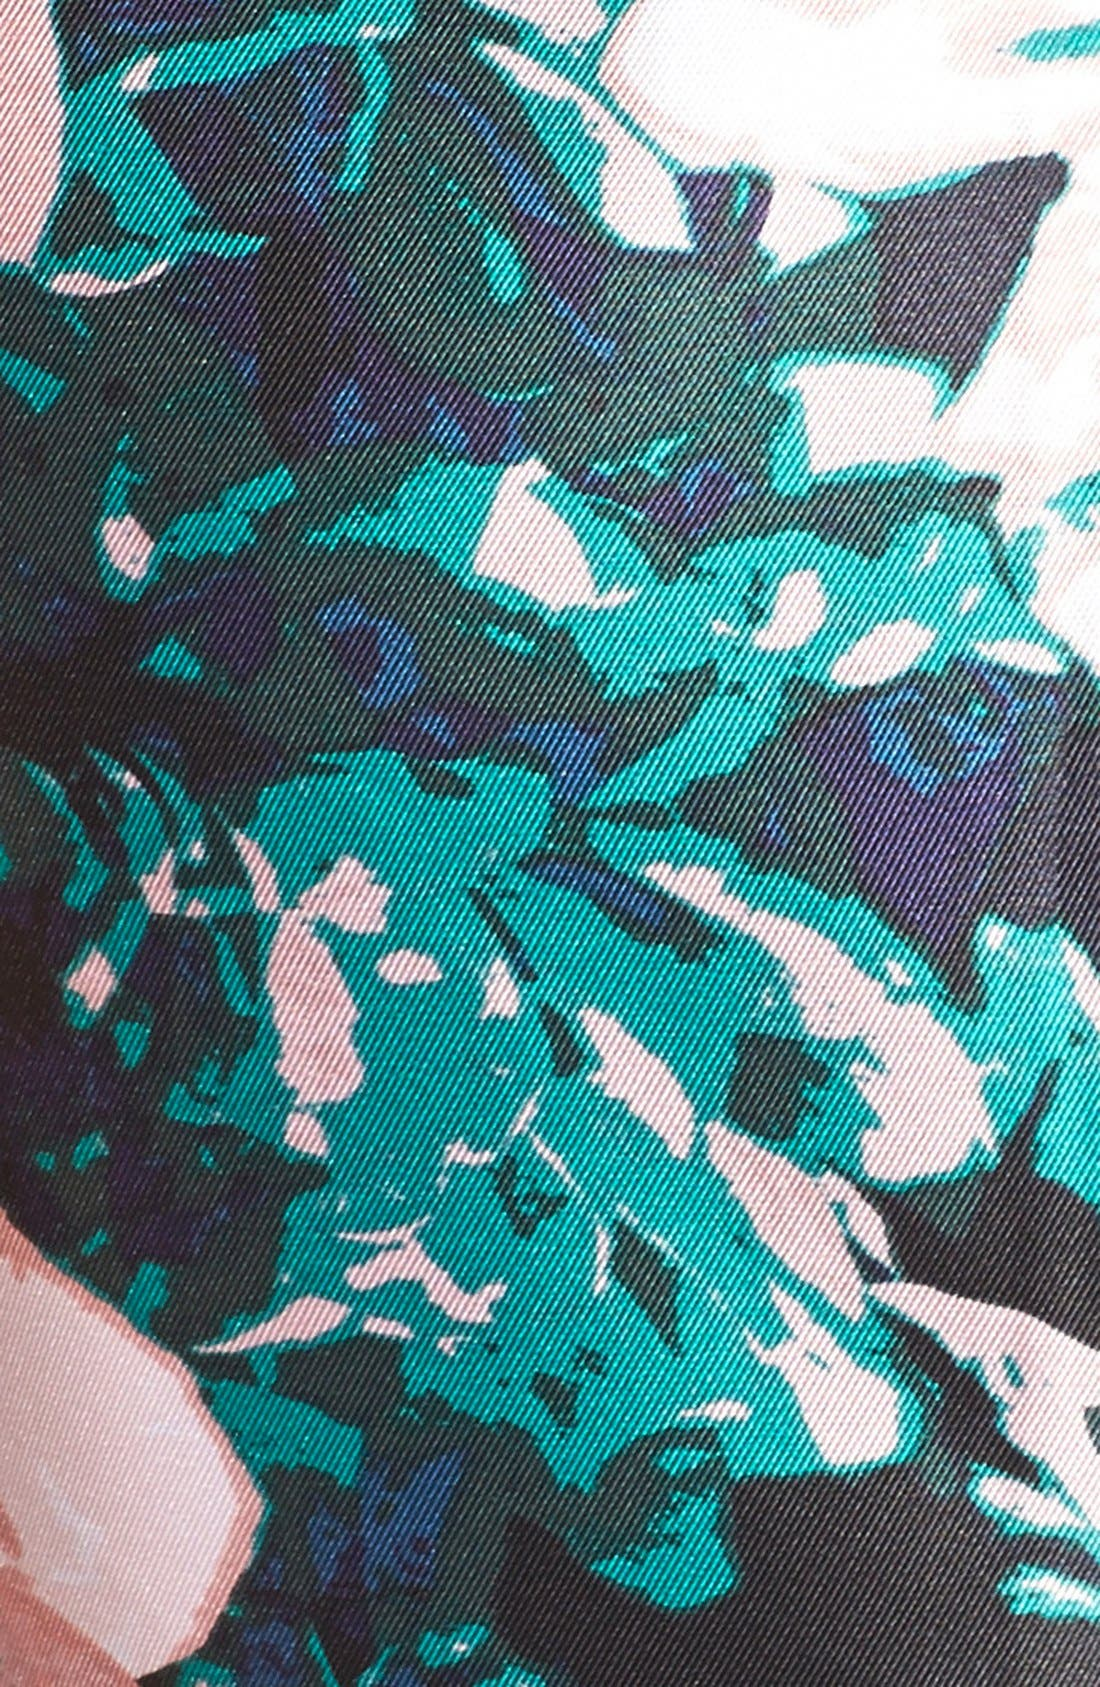 Alternate Image 4  - Adrianna Papell Floral Print Mikado Fit & Flare Dress